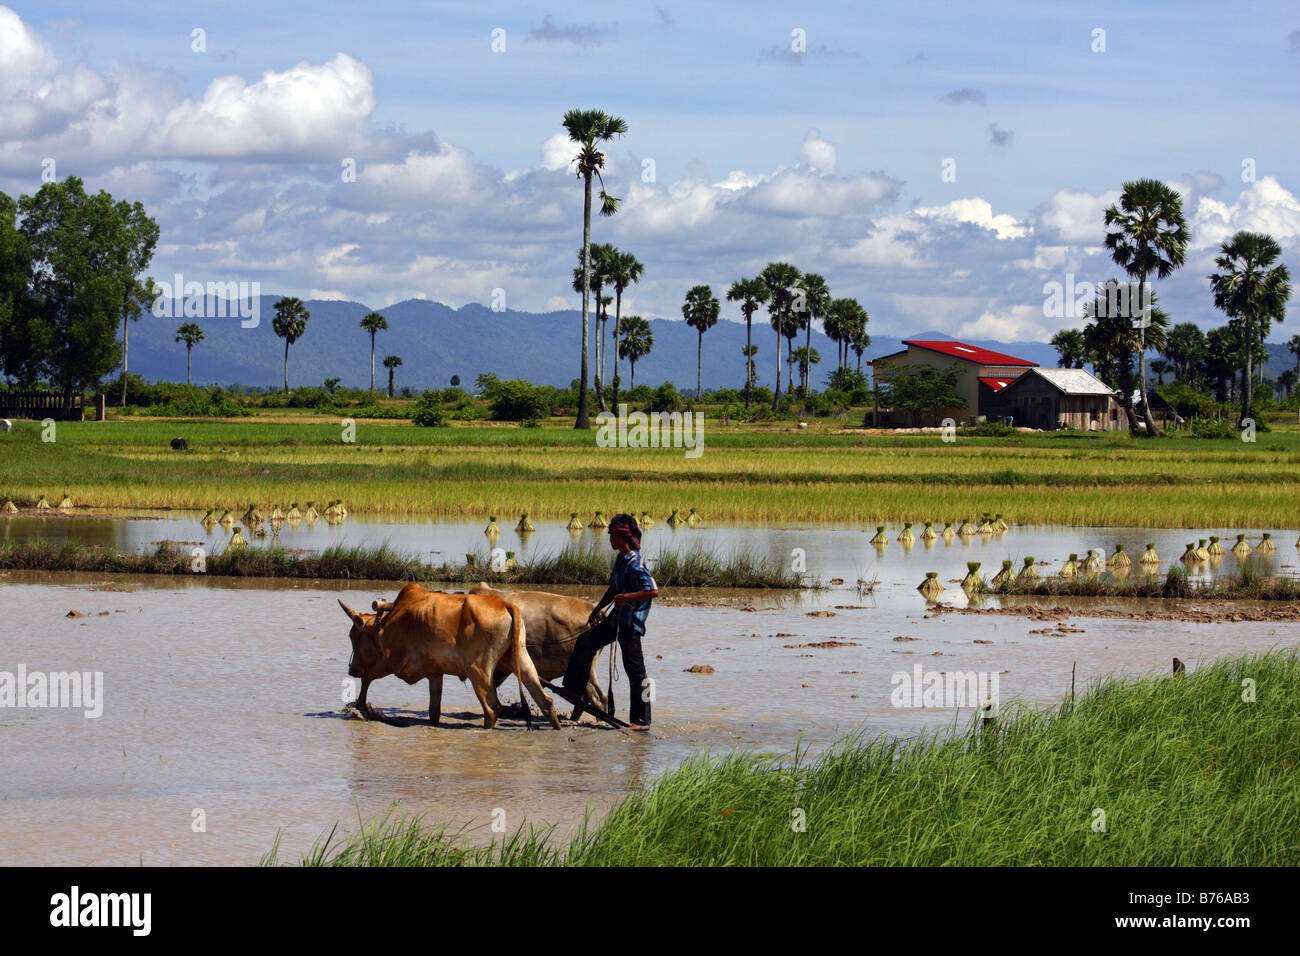 Man with 2 oxen plowing a rice field, Kampot South Cambodia - Stock Image